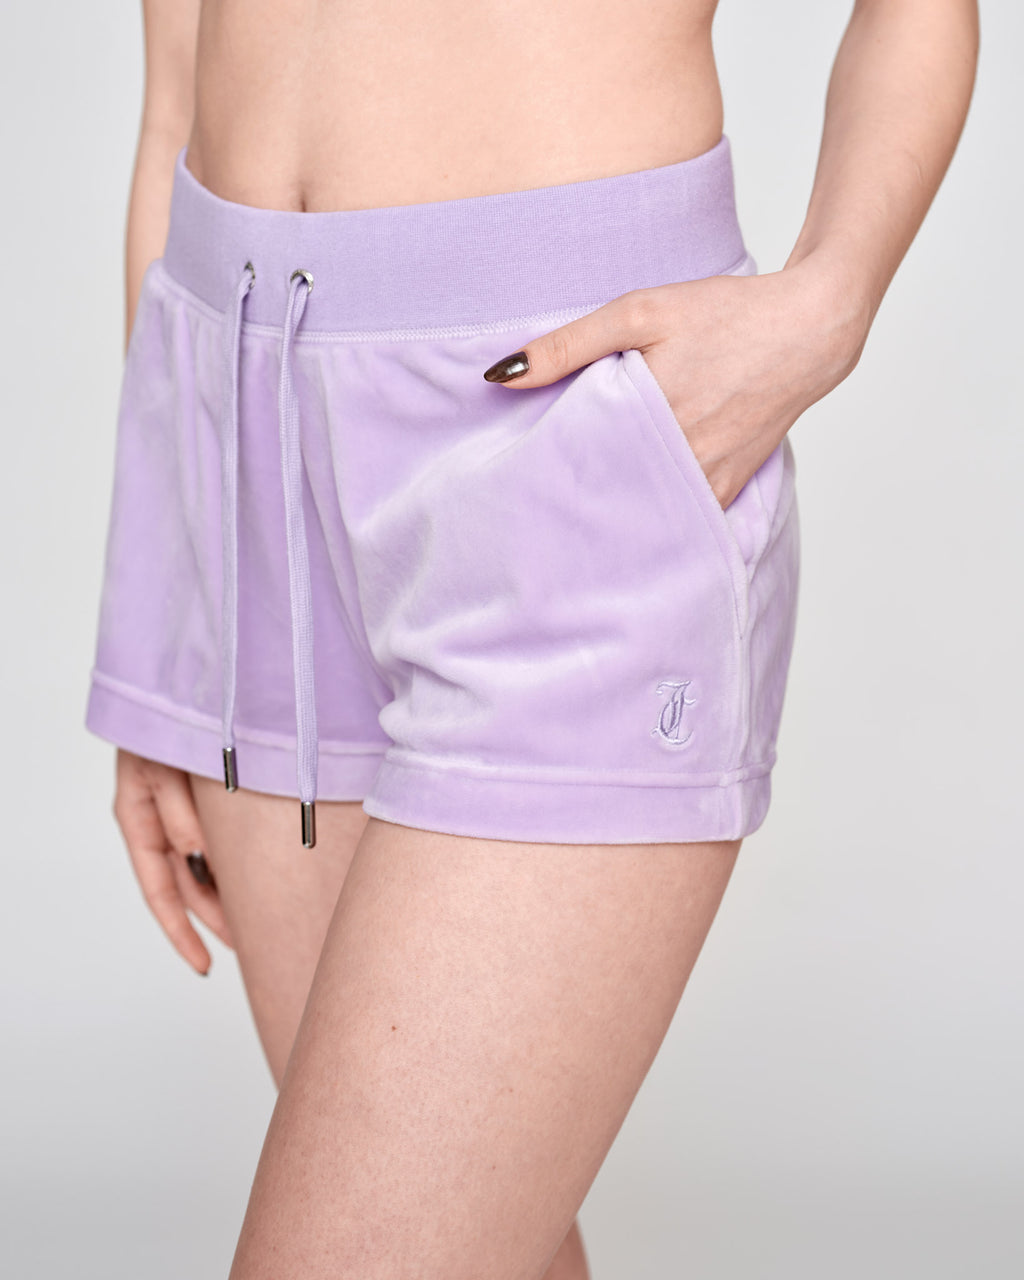 Eve Classic Velour Shorts Pastel Lilac - Juicy Couture Scandinavia